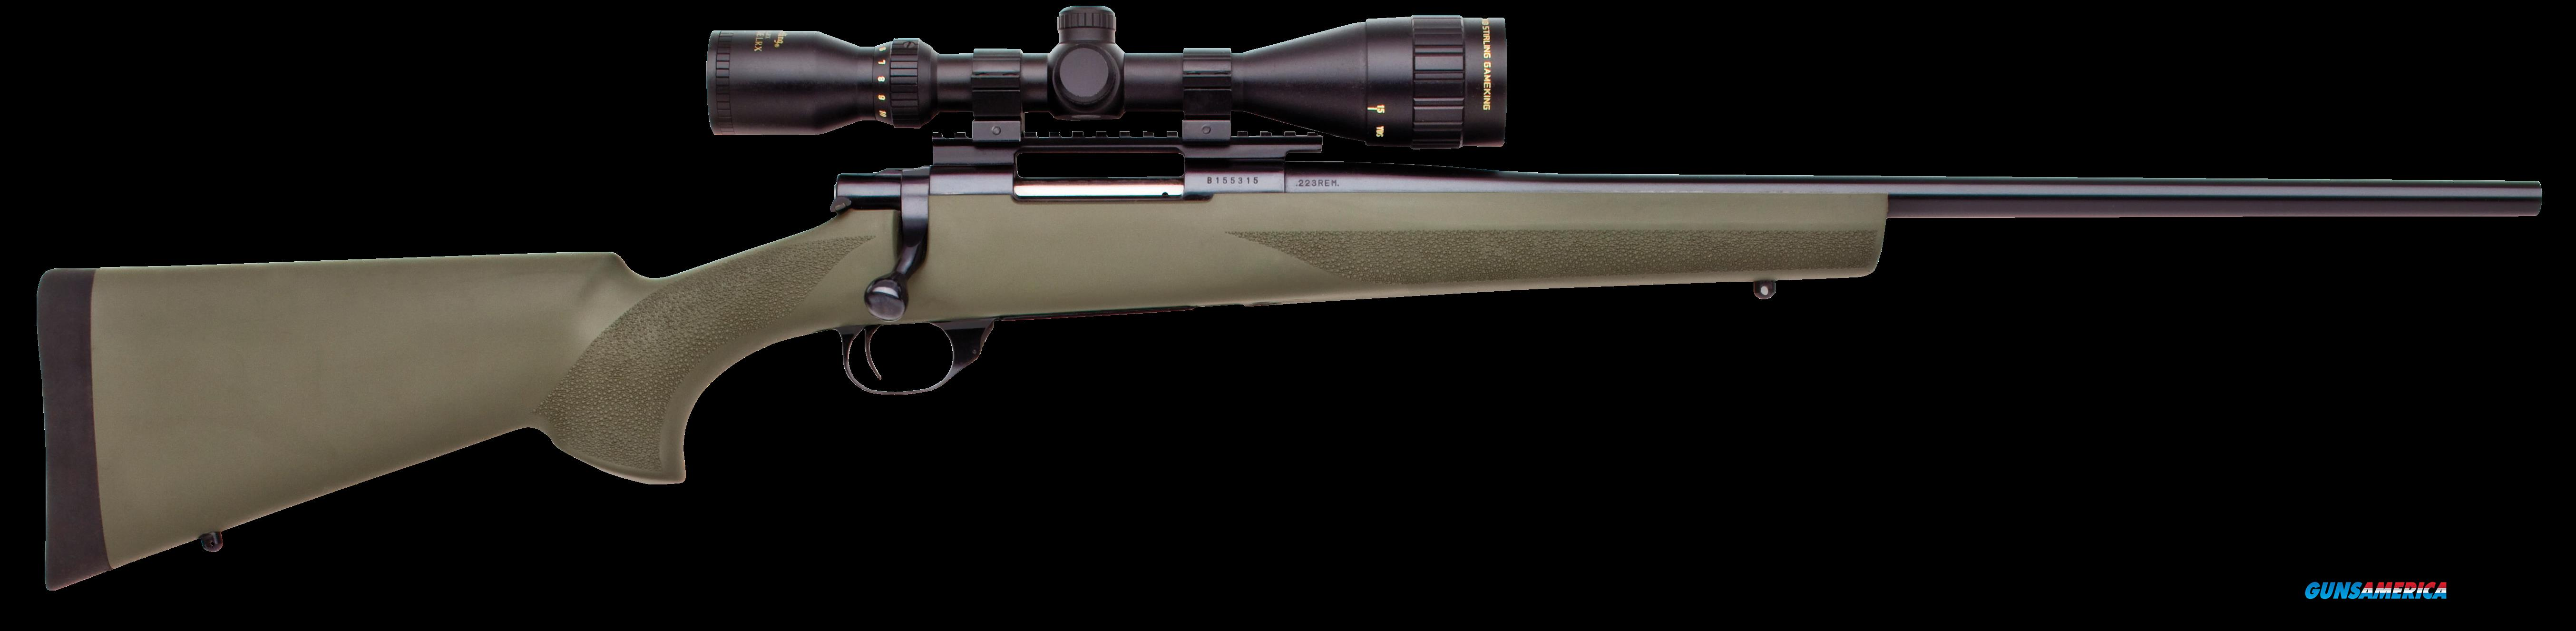 "Howa HGT90228+ Hogue Targetmaster Scope Package Bolt 223 Remington 20"" HB 5+1 Hogue Overmolded Green  Guns > Rifles > Howa Rifles"